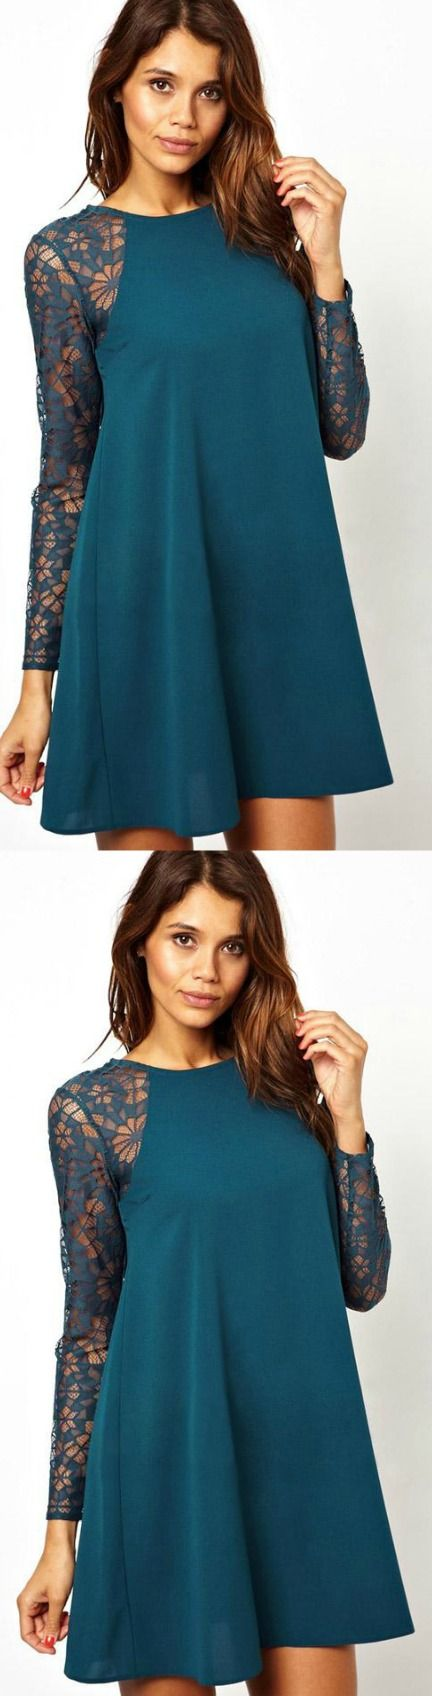 Spring Fashion Casual Dress! Click The Image To Buy It Now or Tag Someone You Want To Buy This For.  #BlueCasualDress